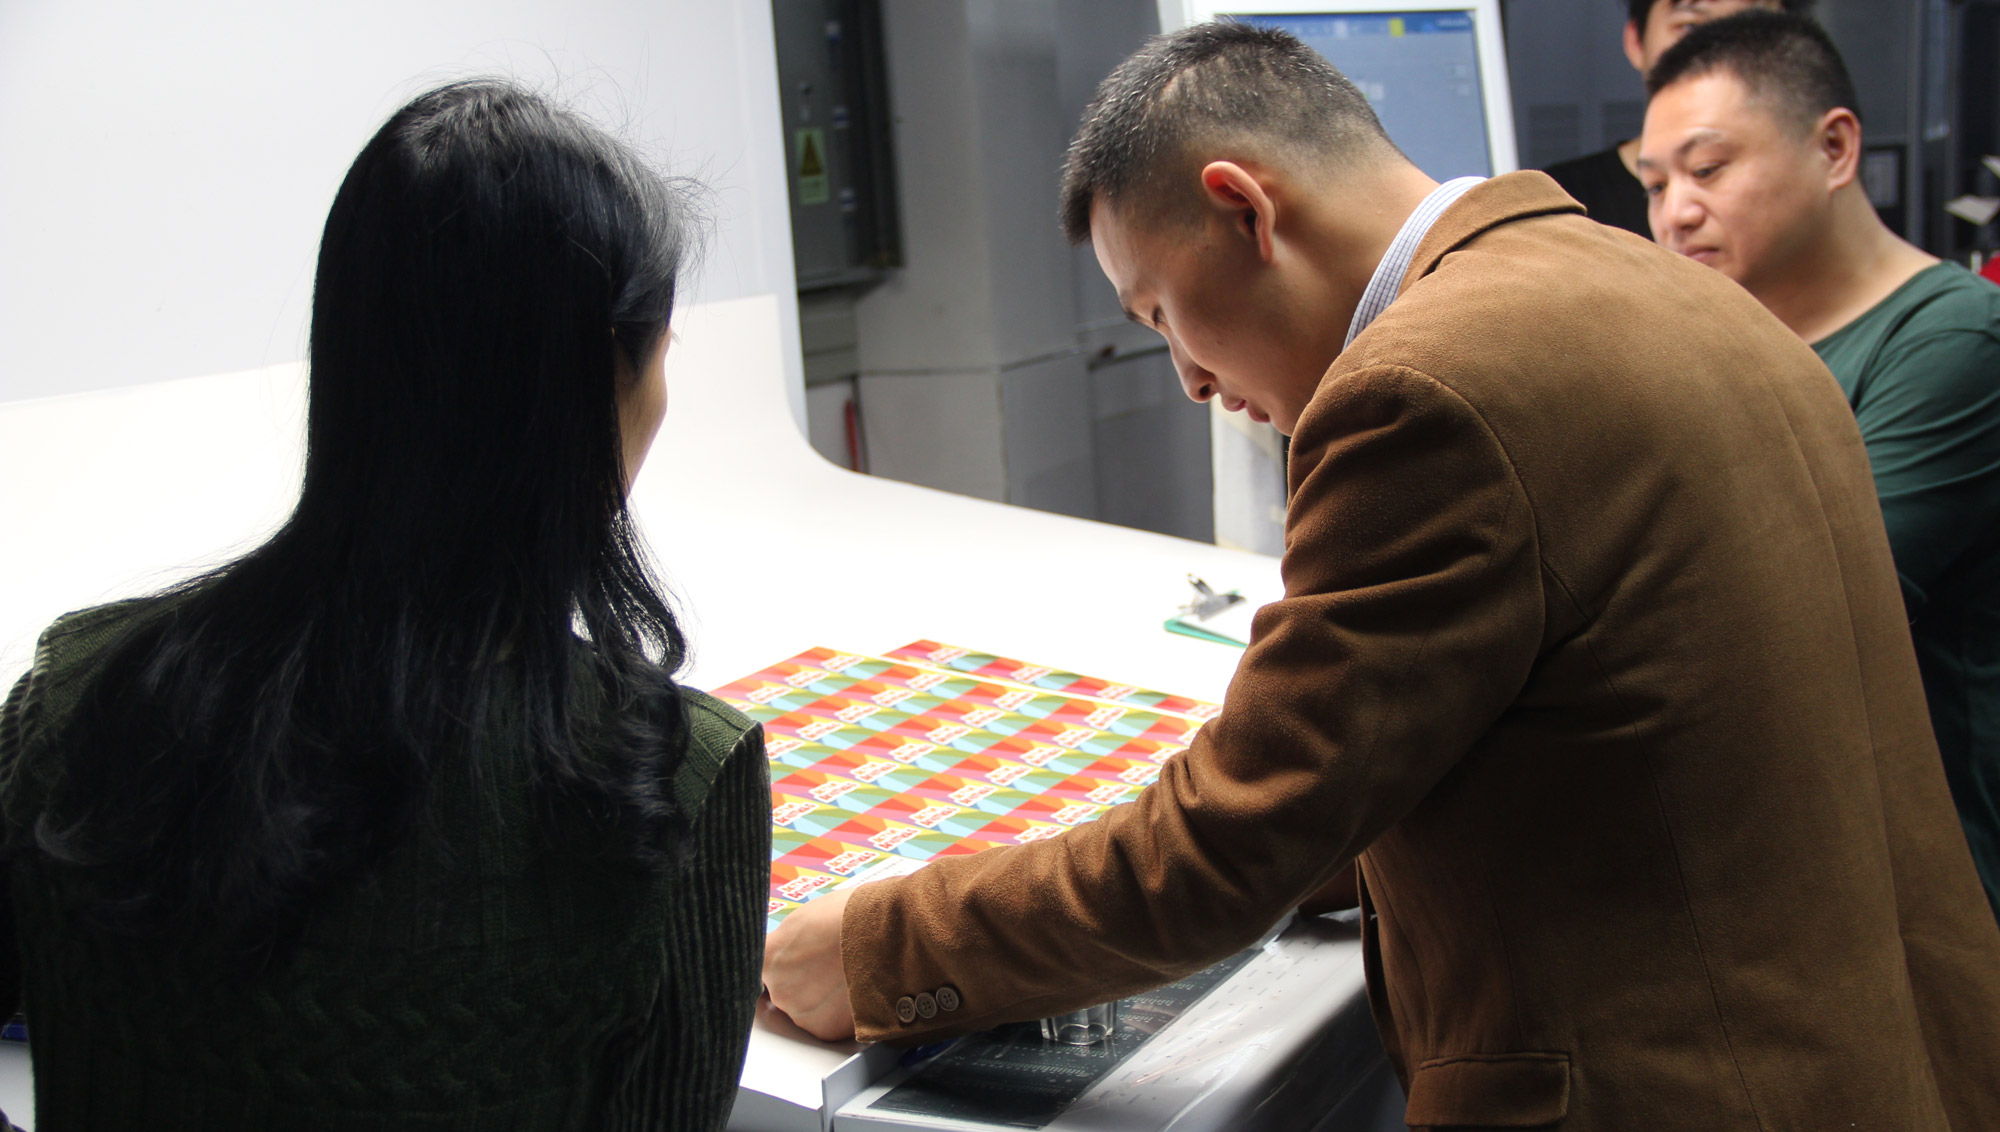 Board Game Printing inspection for the Offset Printing process